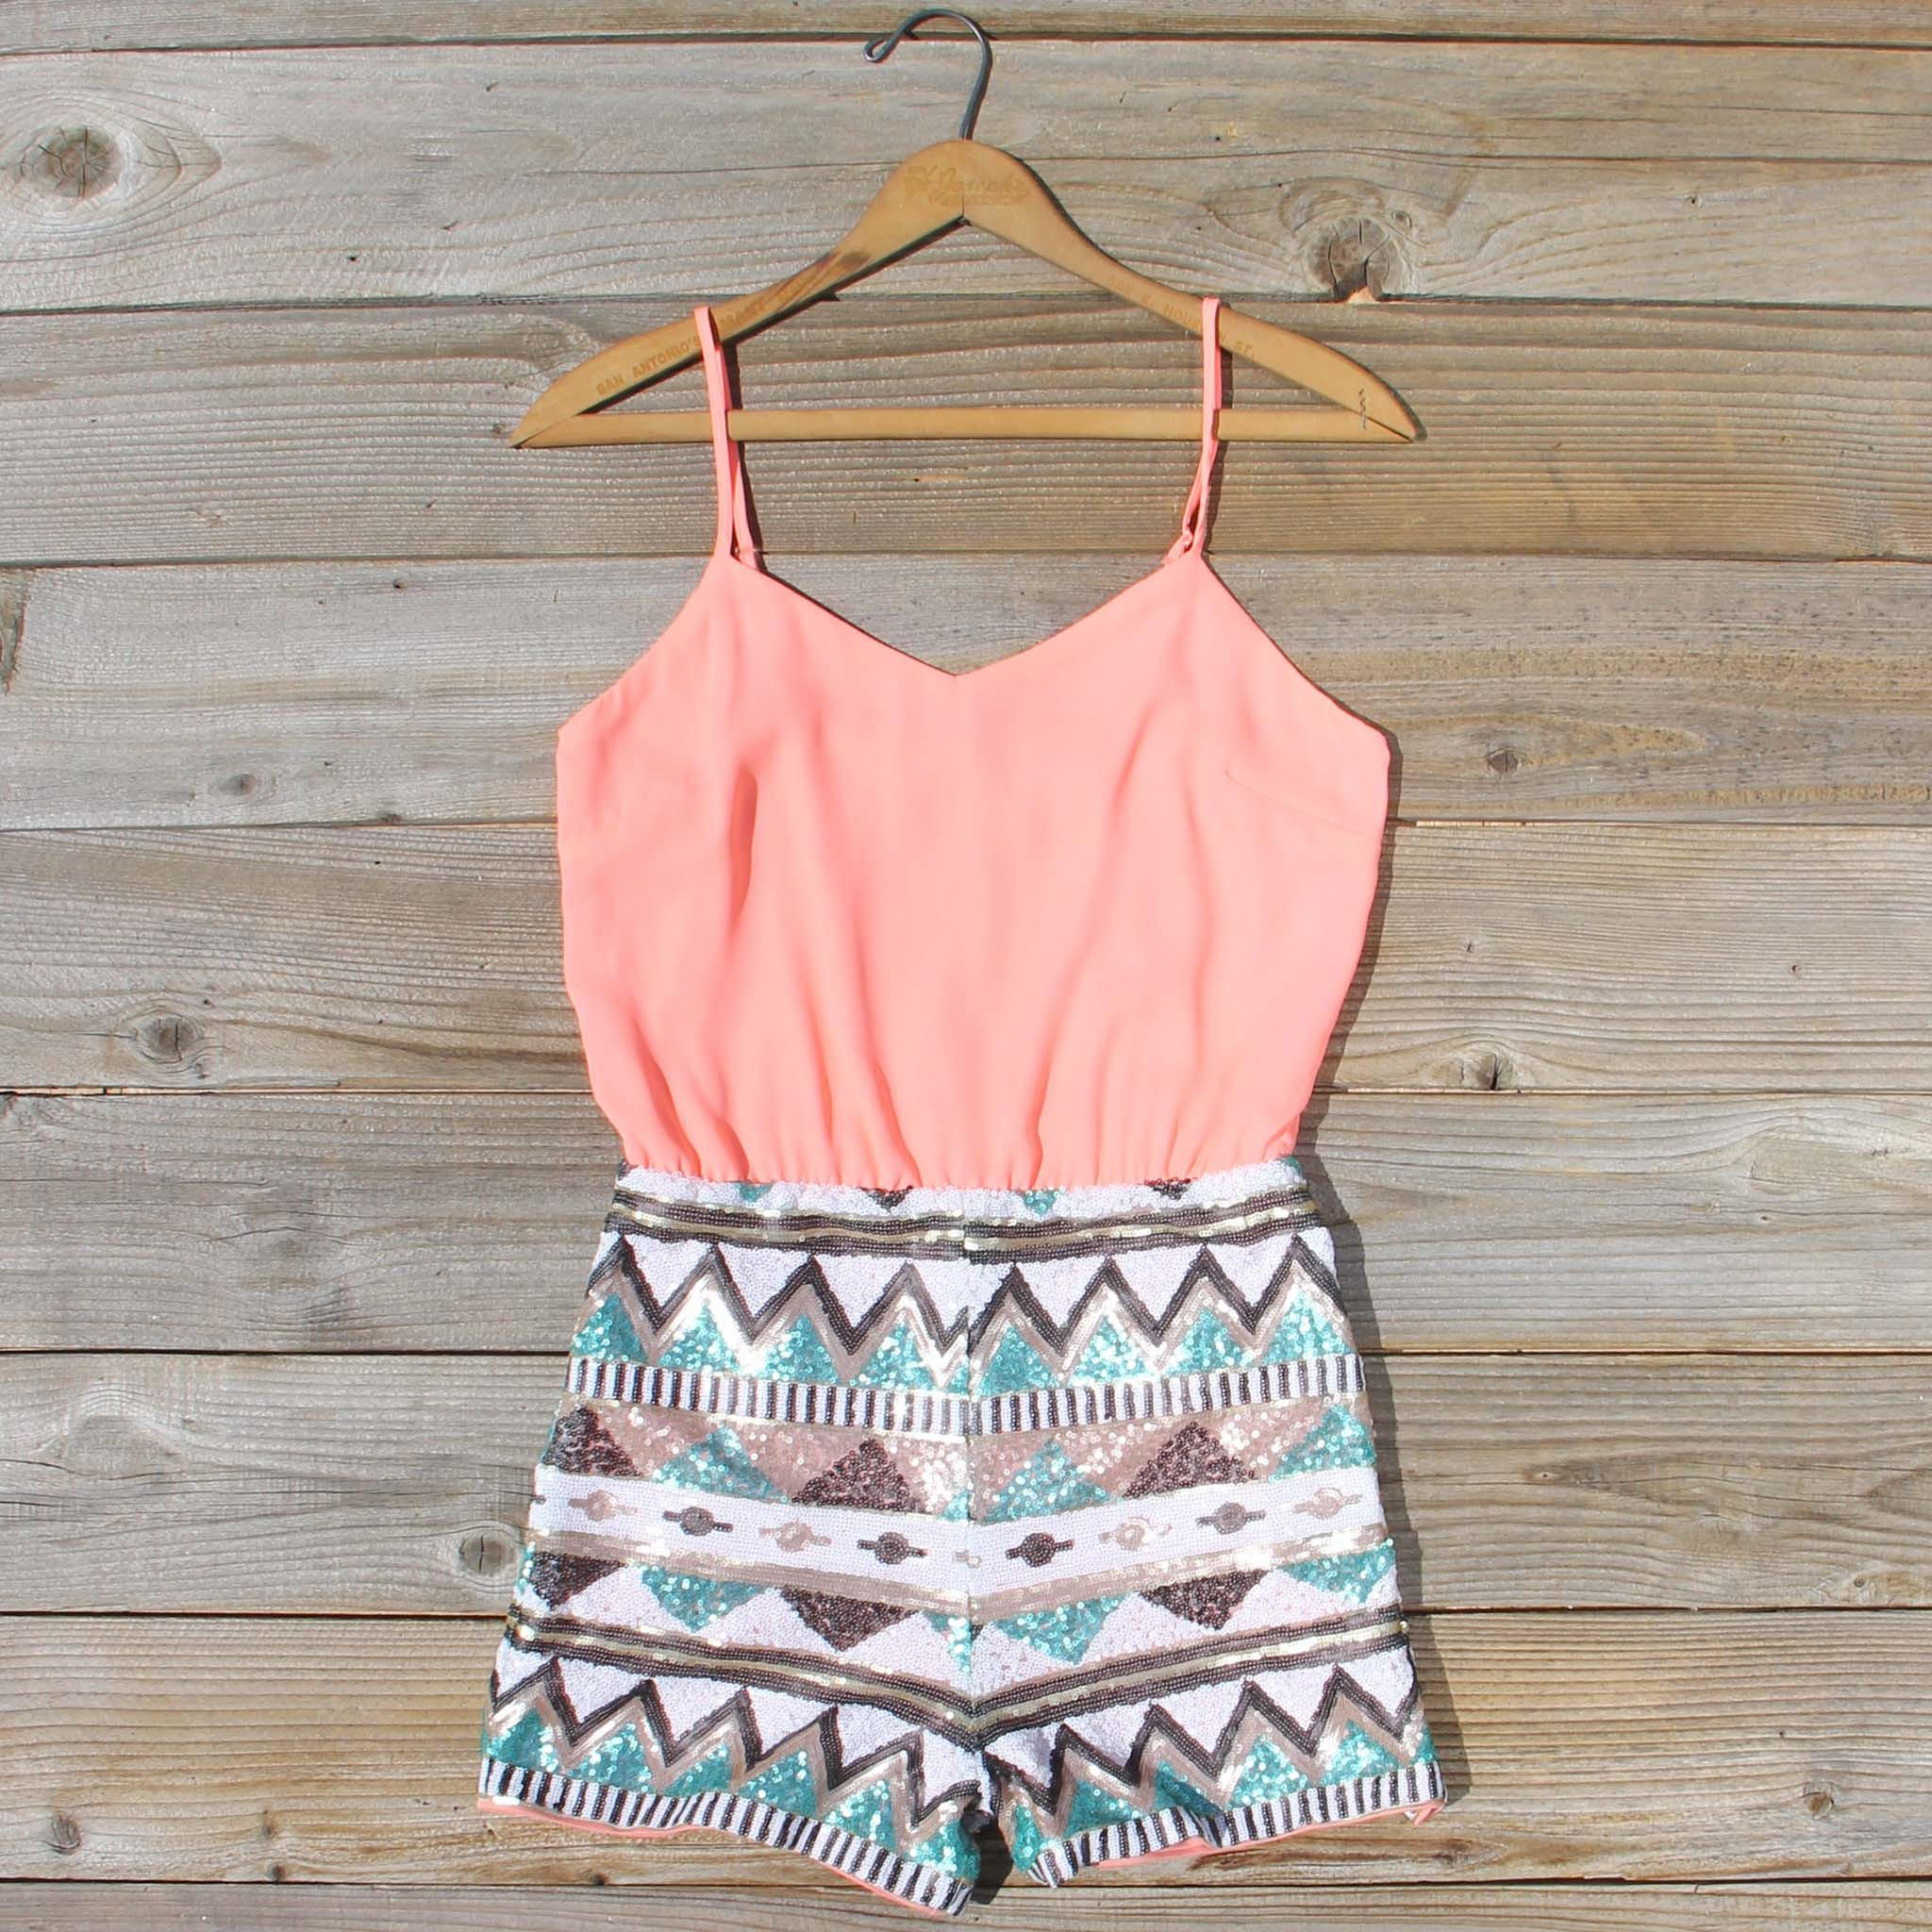 b62aac82b7cb Crystal Wishes Romper in Peach from Spool No.72. Saved to Sweet  Summertime.... Shop more products from Spool No.72 on Wanelo.